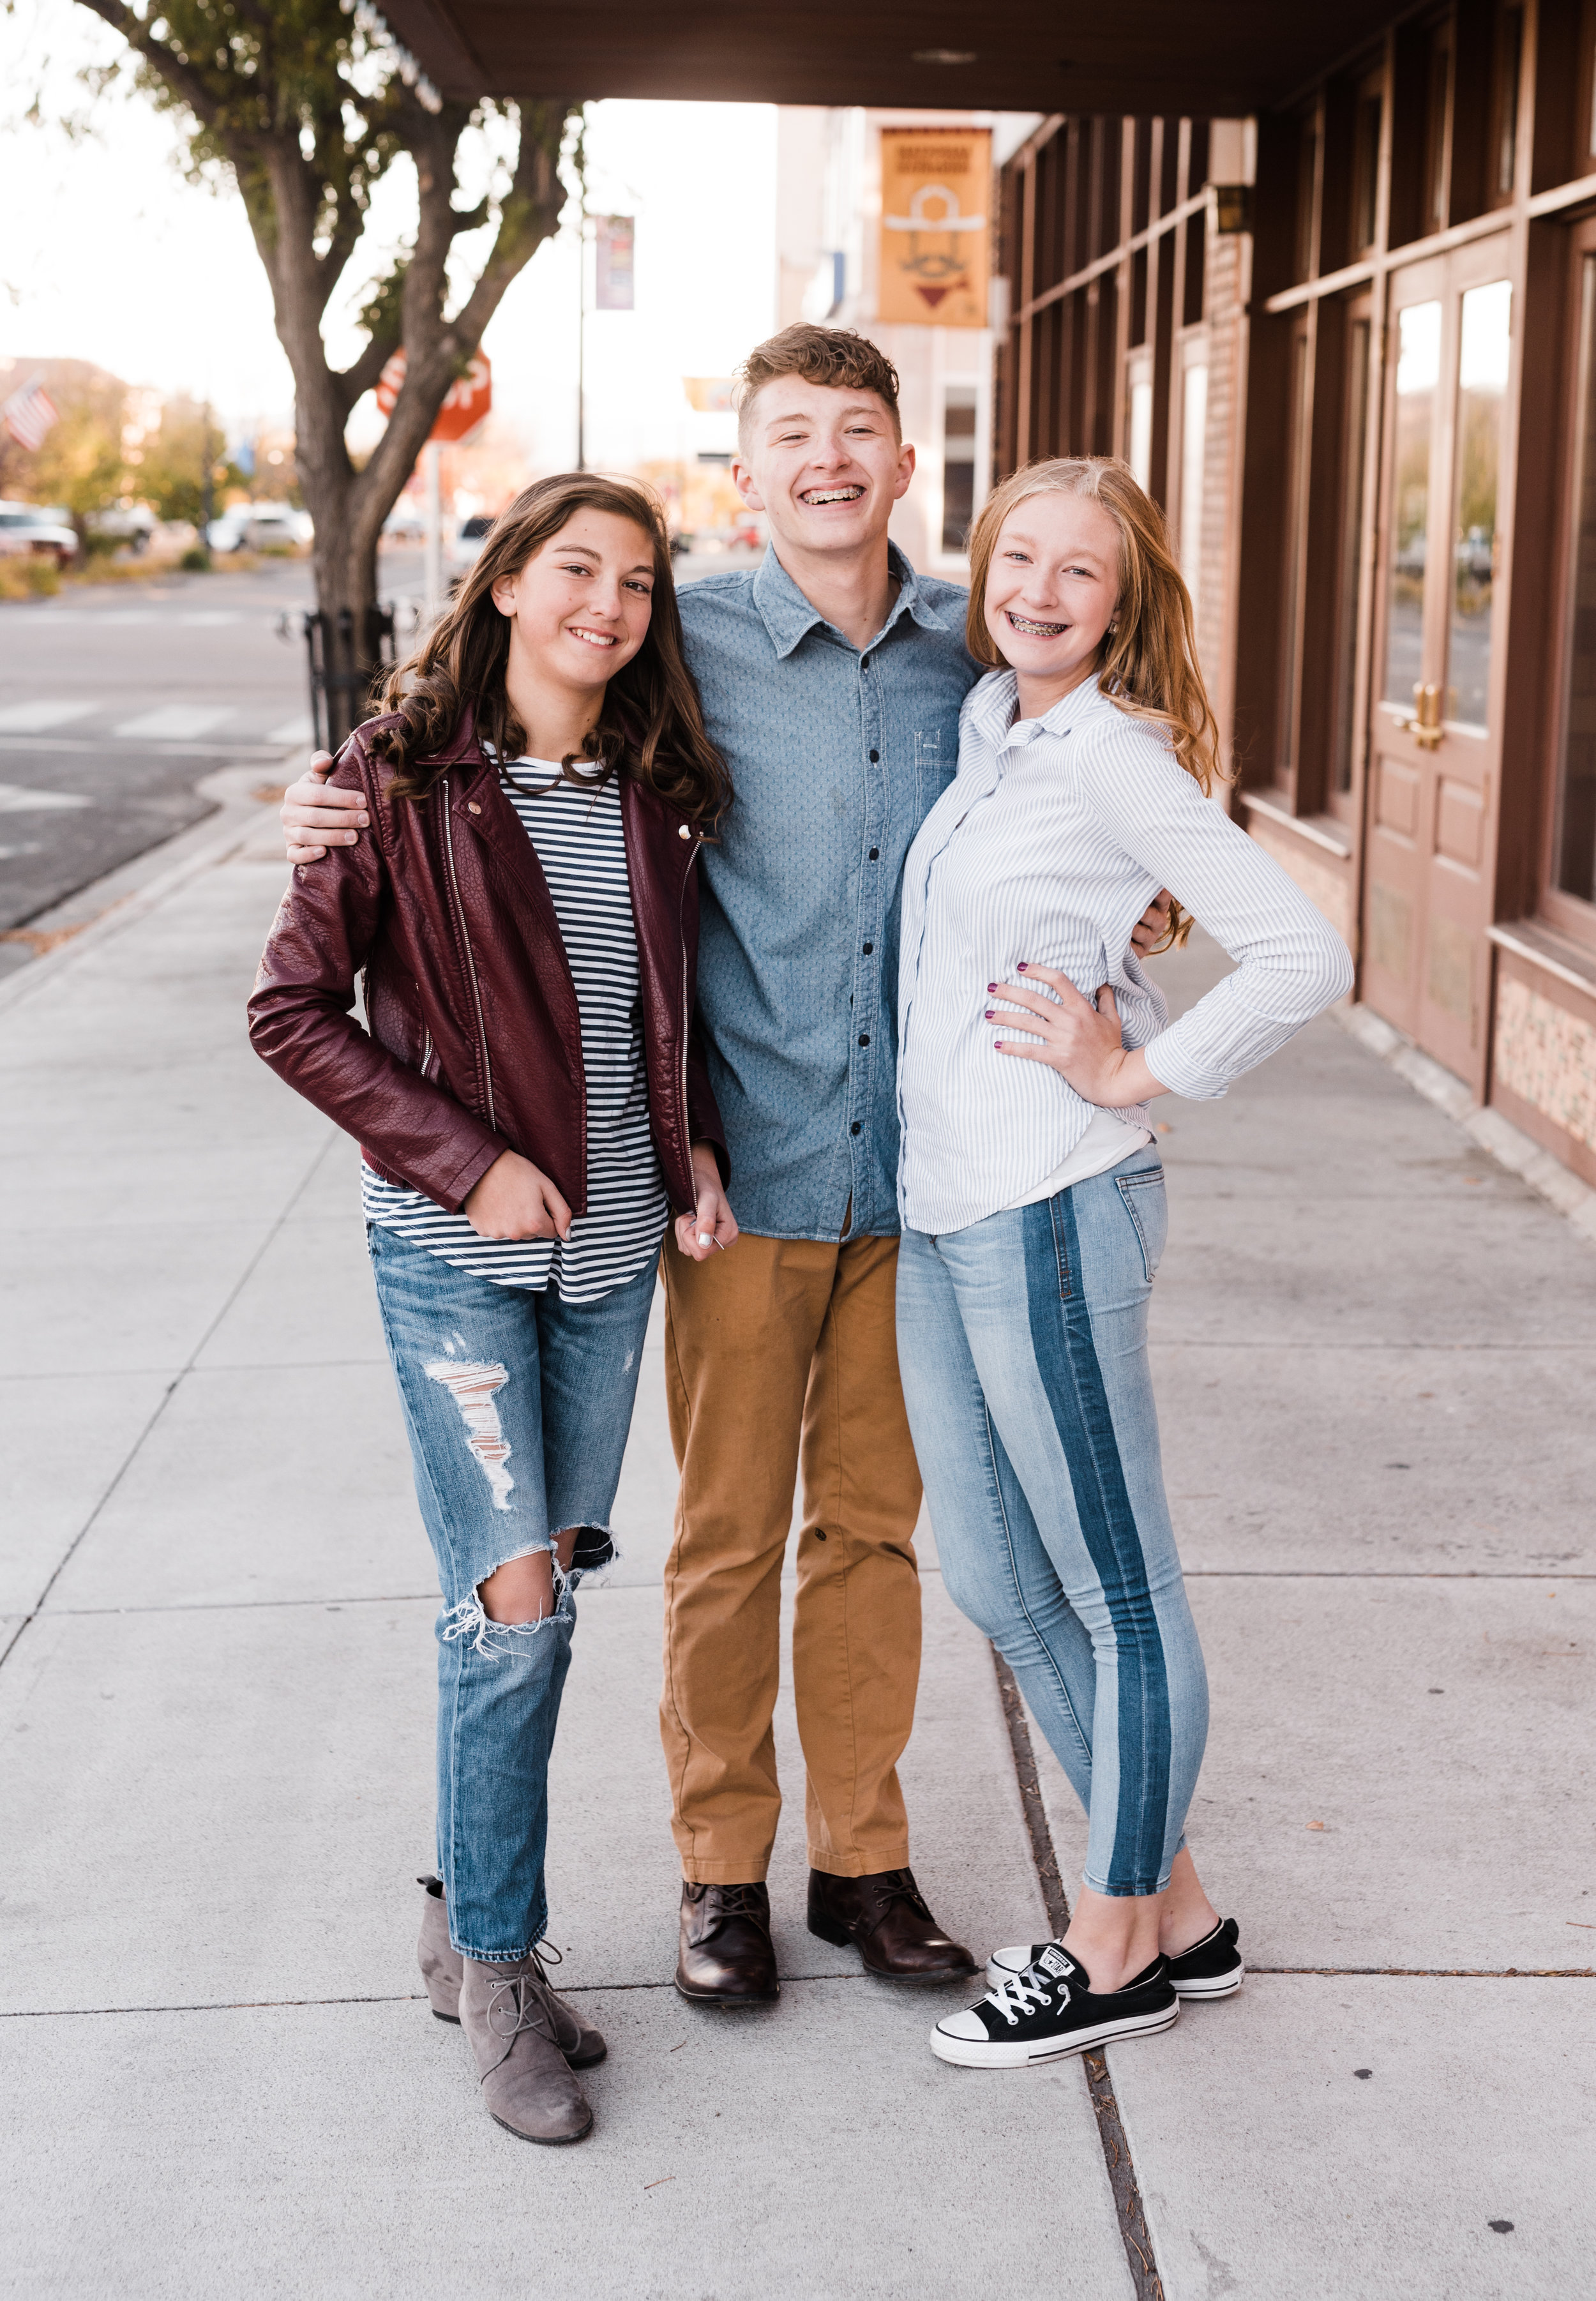 Noah, Alexis, & Riley Byers - Being a Chiro kid always has its pluses and these three know that Chiropractic is a Family event! Noah, Alexis, & Riley are all in when it comes to serving their community thru specific Chiropractic care. All three have an amazing story to tell about how Chiropractic has and continues to enhance their life.